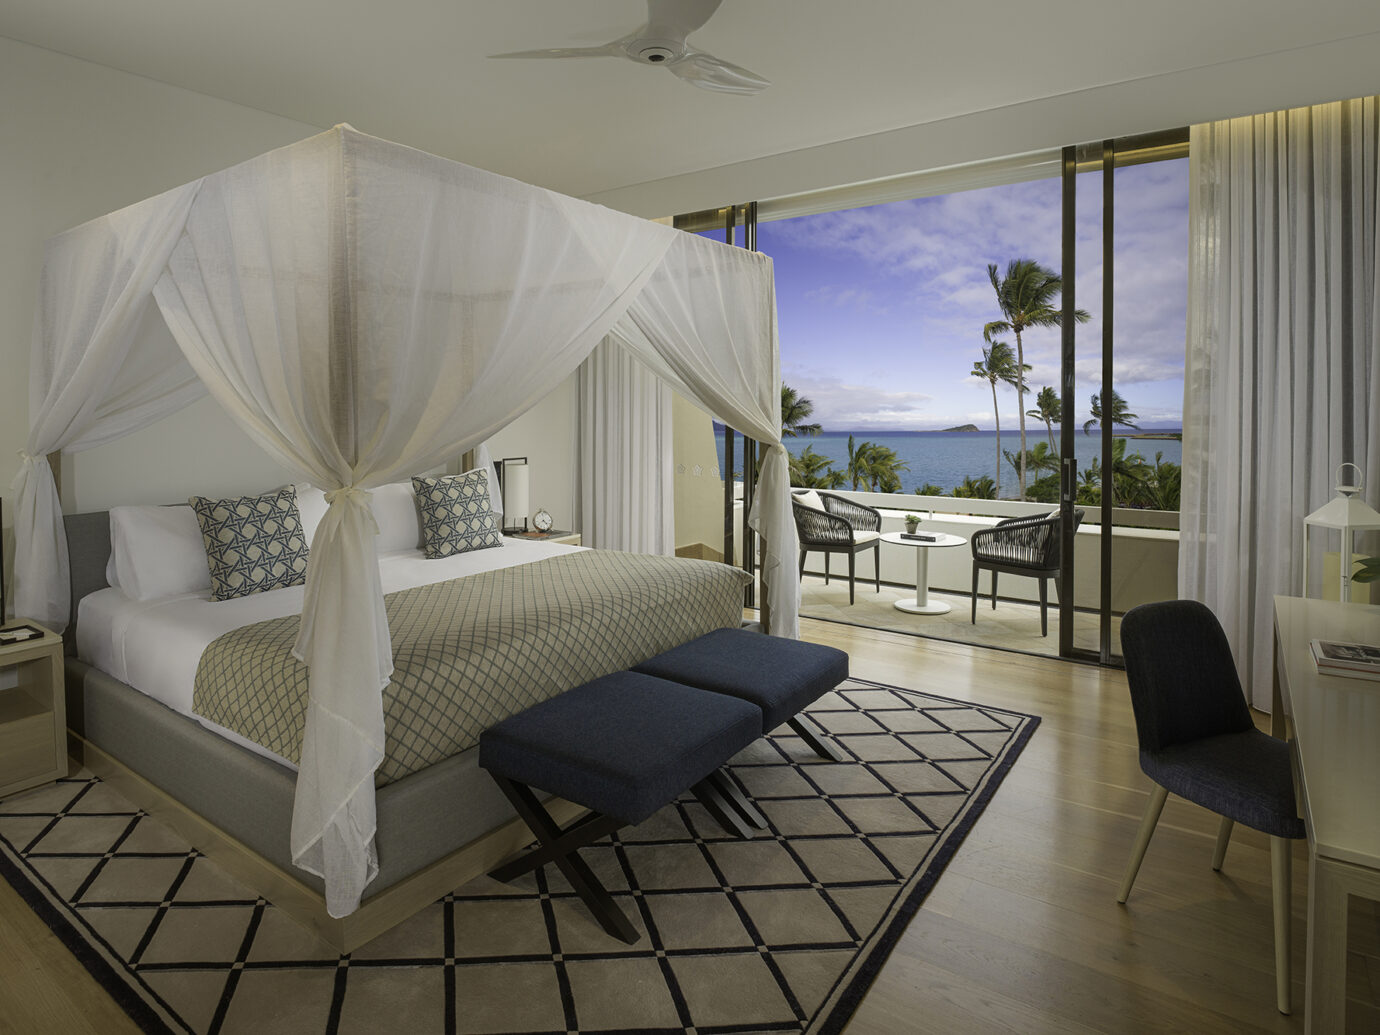 Bedroom at InterContinental Hayman Island Resort